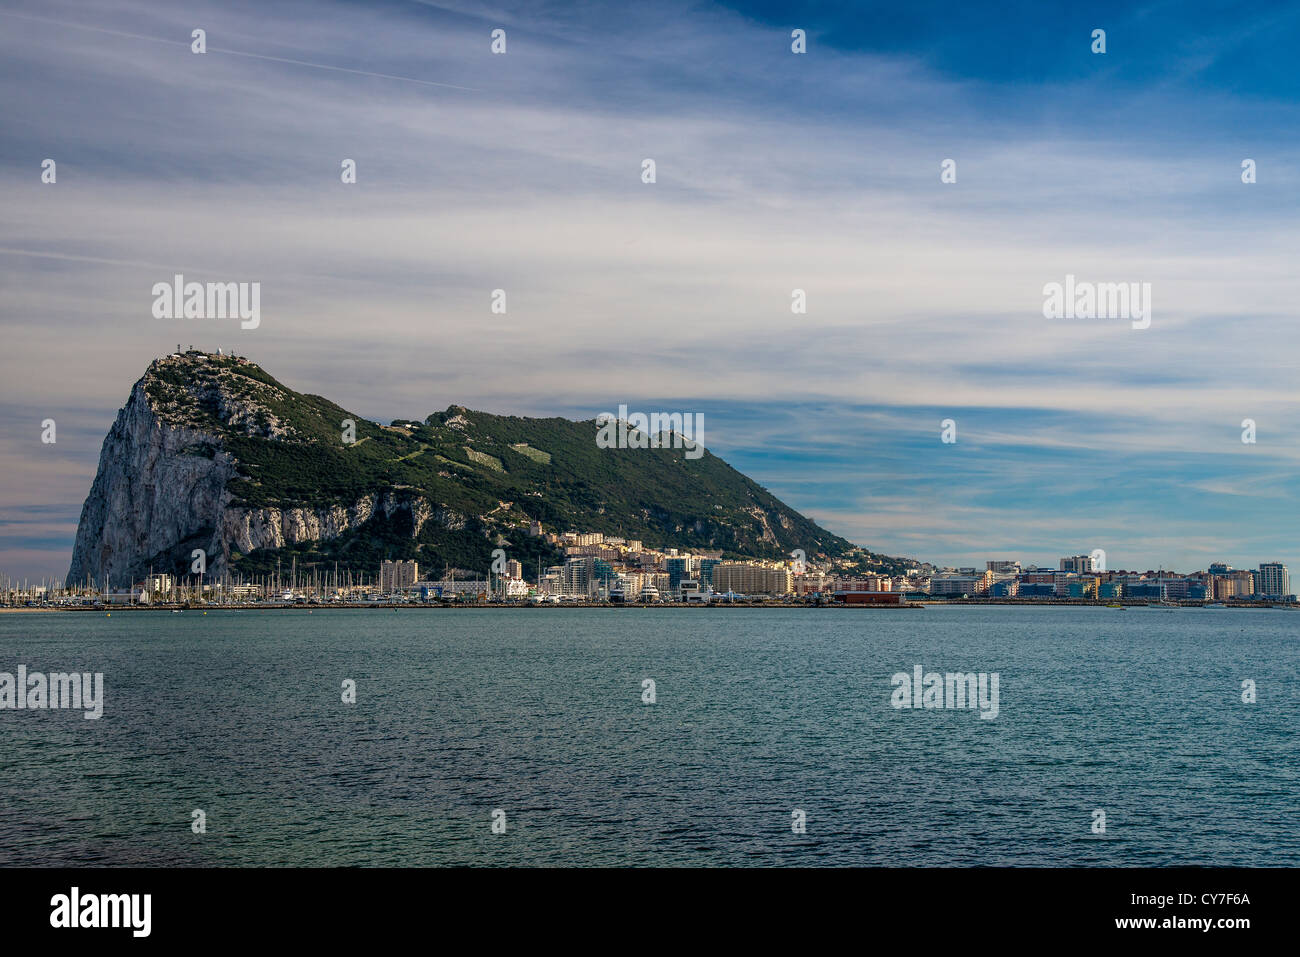 Panoramic view over the Western face of The Rock, Gibraltar, Spain - Stock Image